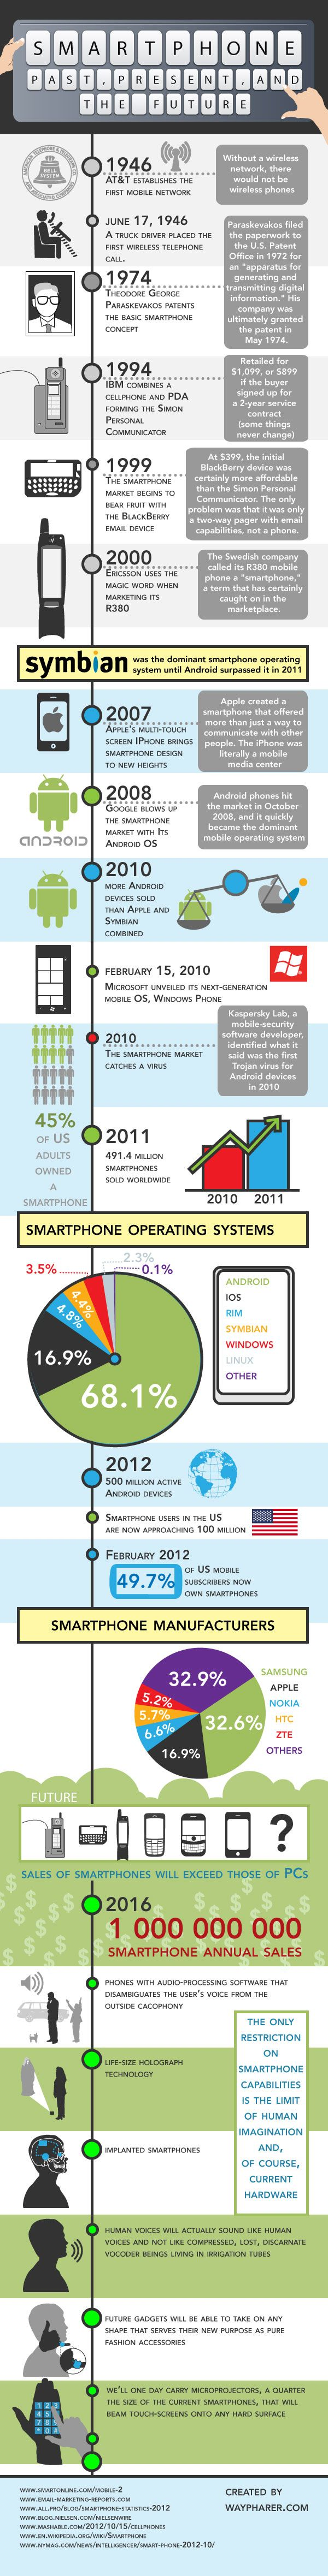 #Smartphones: Past, Present and Future! - It has grown quickly after #Android and #iOS Apps Addition.